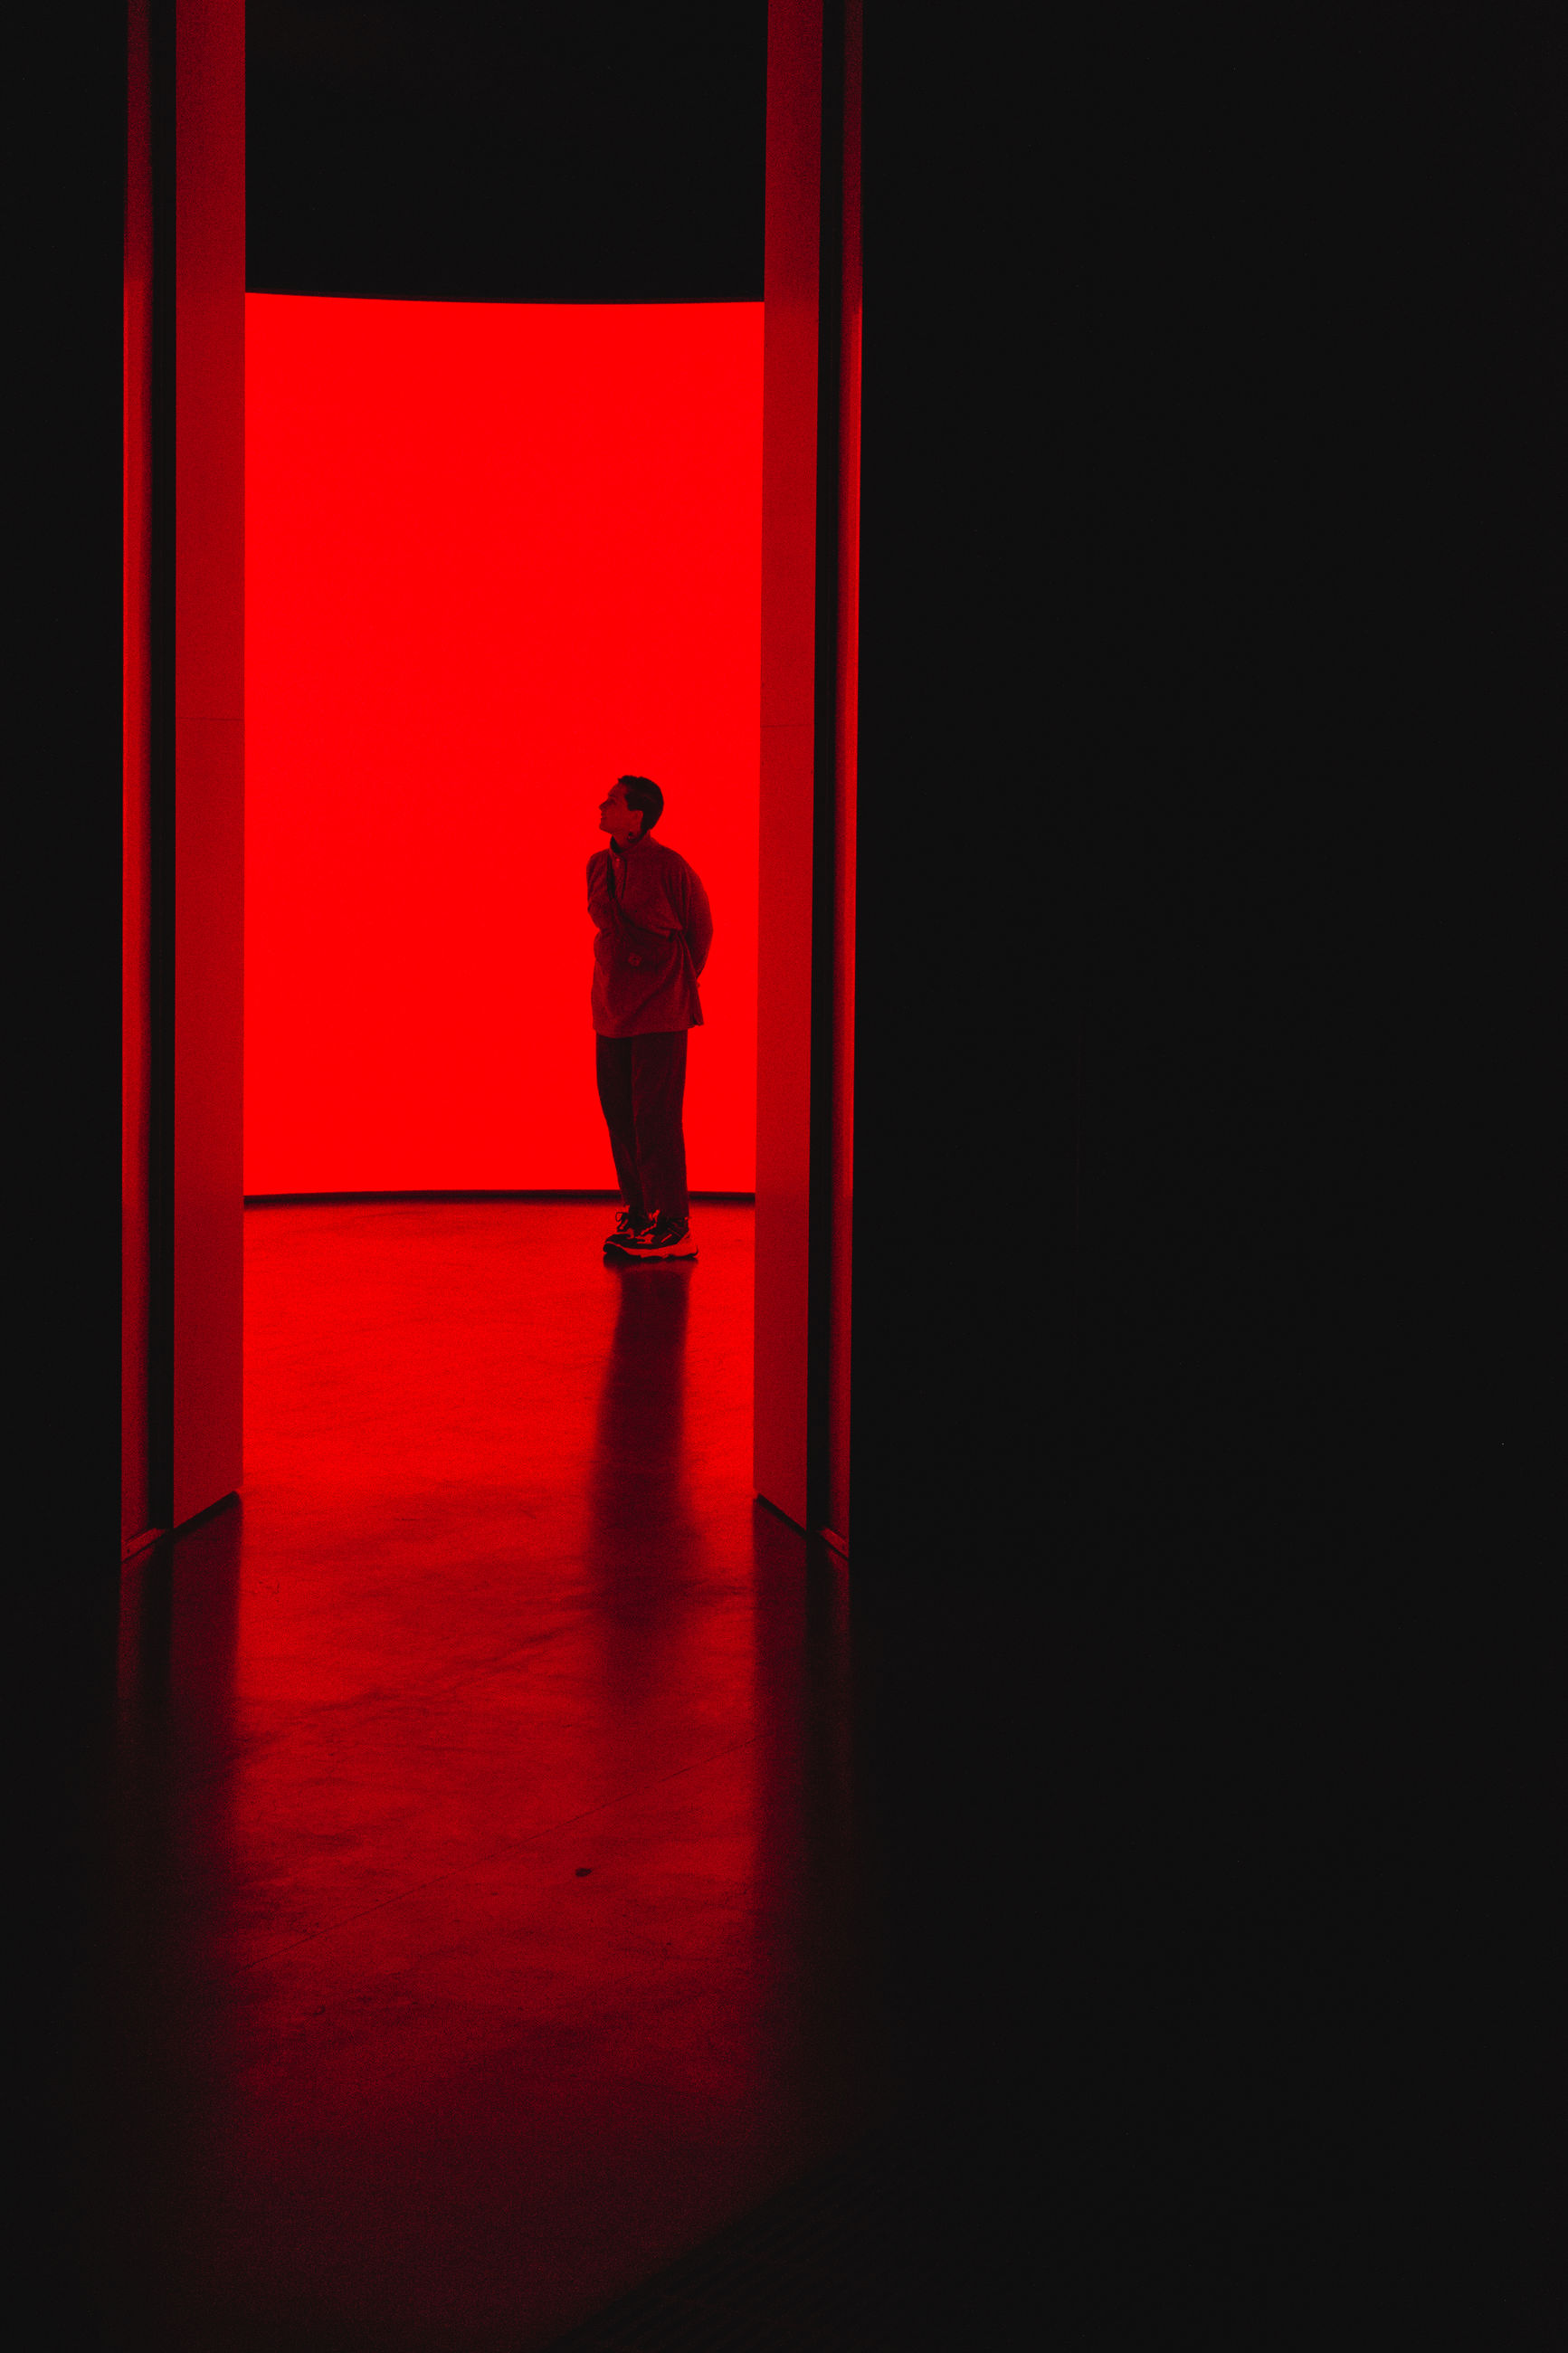 one person, red, real people, indoors, full length, standing, entrance, men, door, copy space, architecture, lifestyles, light - natural phenomenon, building, leisure activity, stage - performance space, wall - building feature, illuminated, domestic room, dark, stage, contemplation